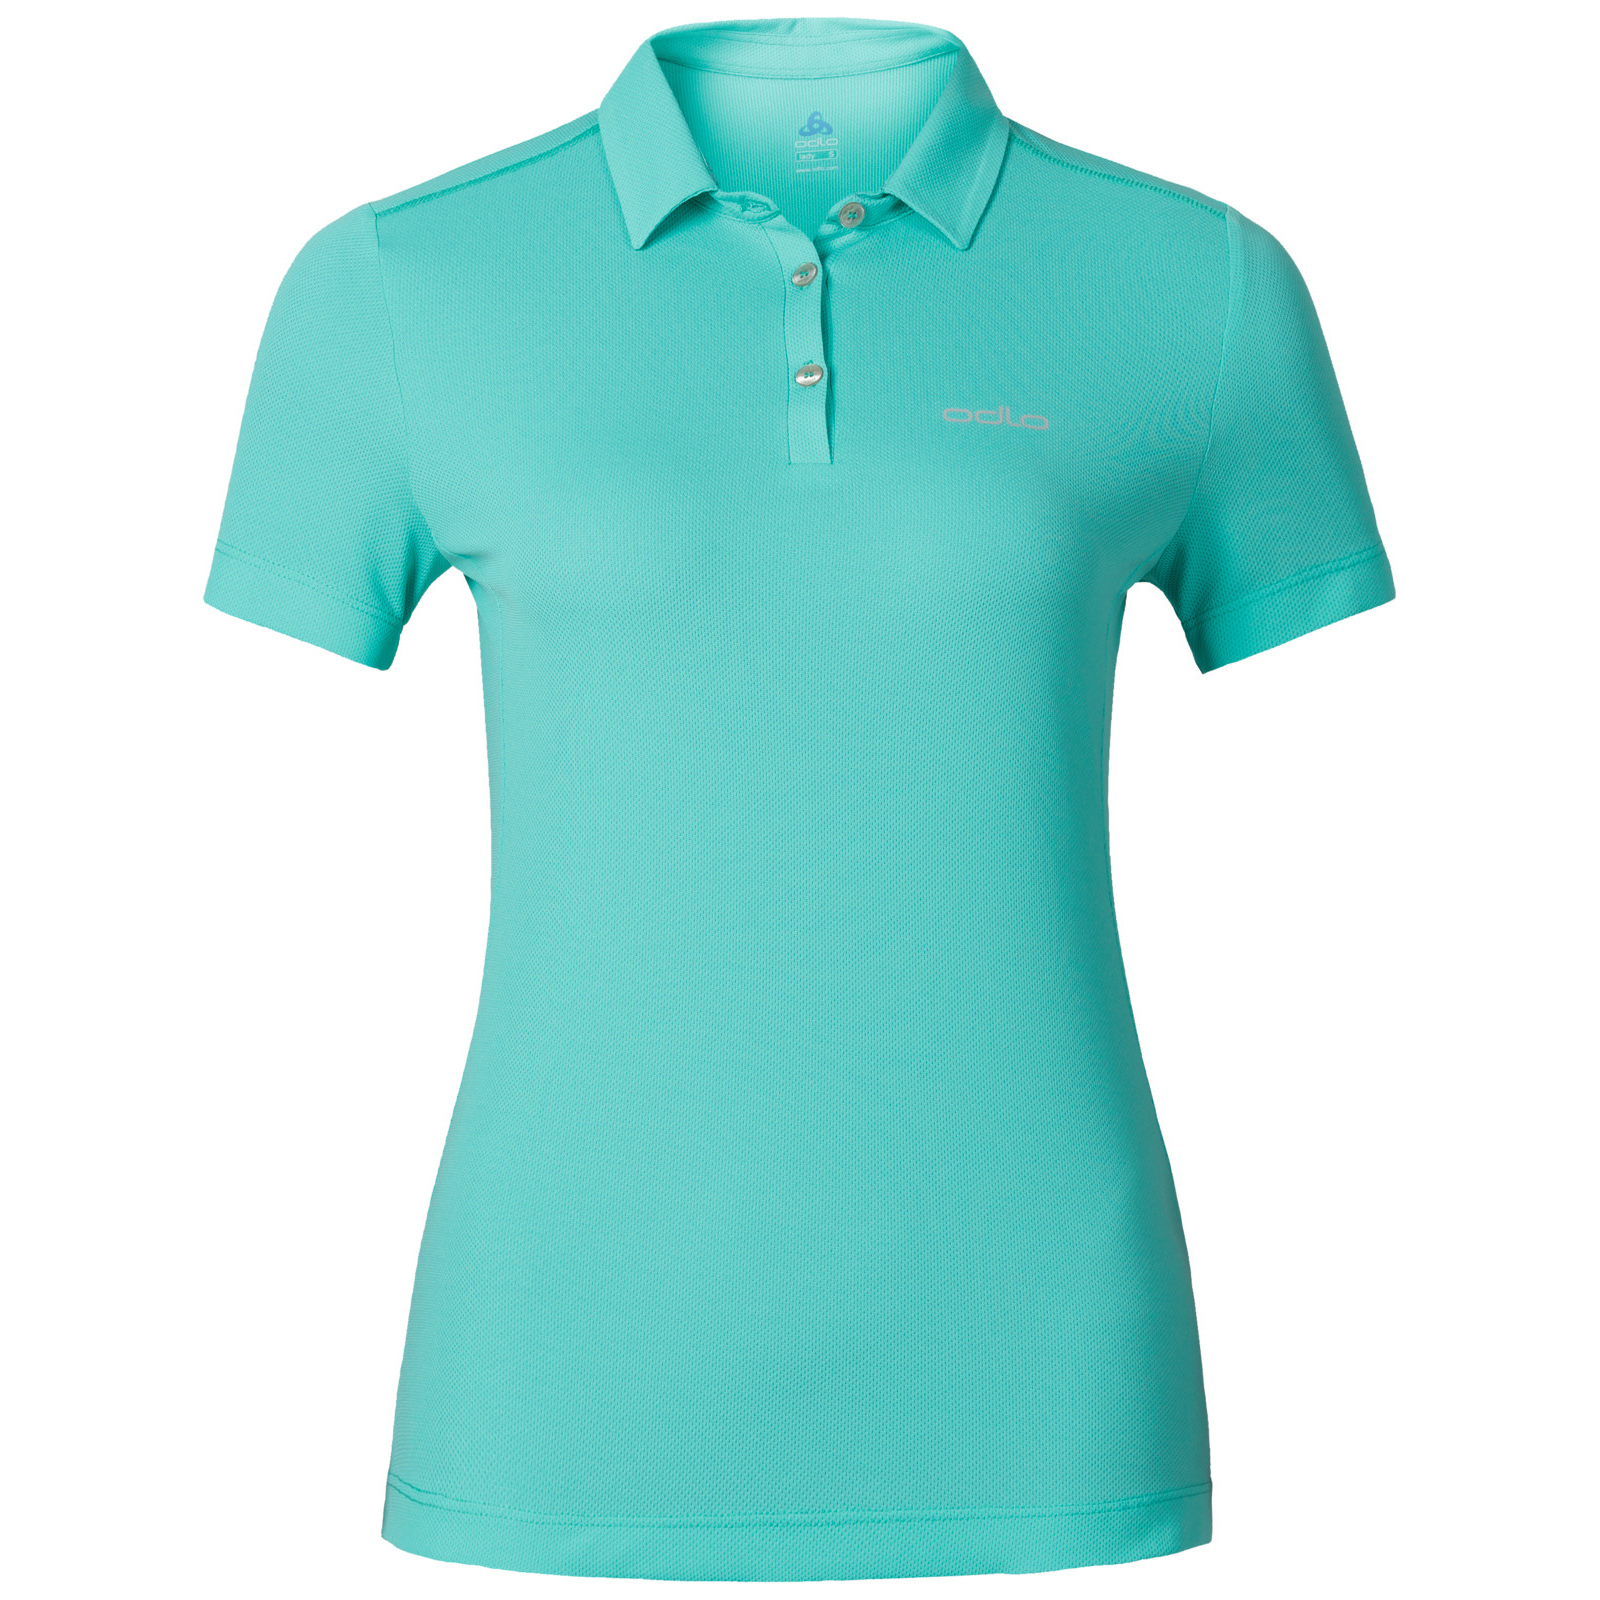 Odlo Polo Shirt Tina | Cockatoo